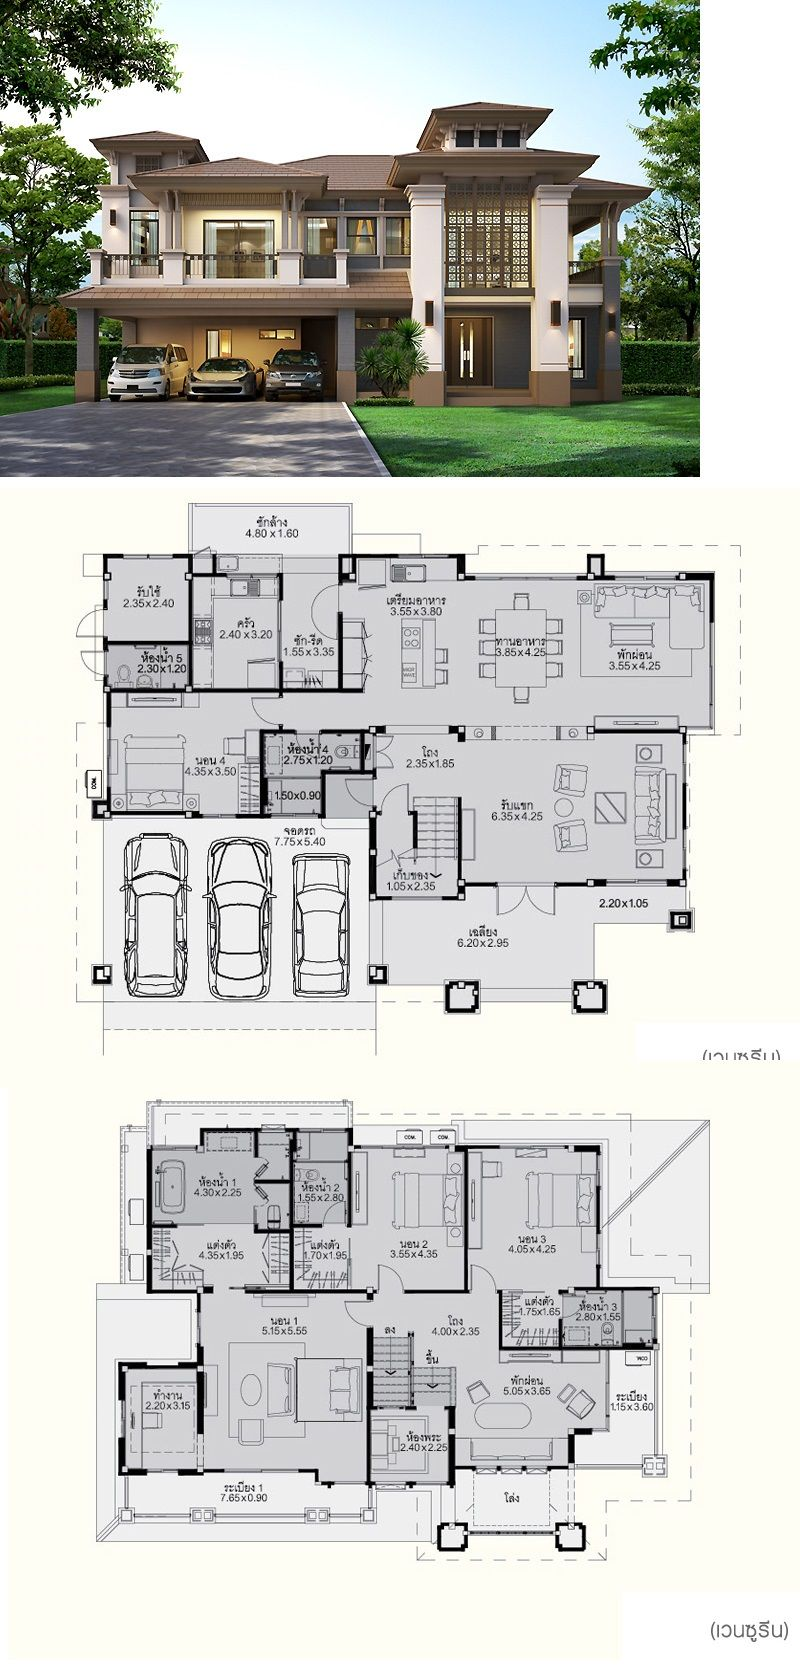 Venturine Modern House Plans House Blueprints House Construction Plan